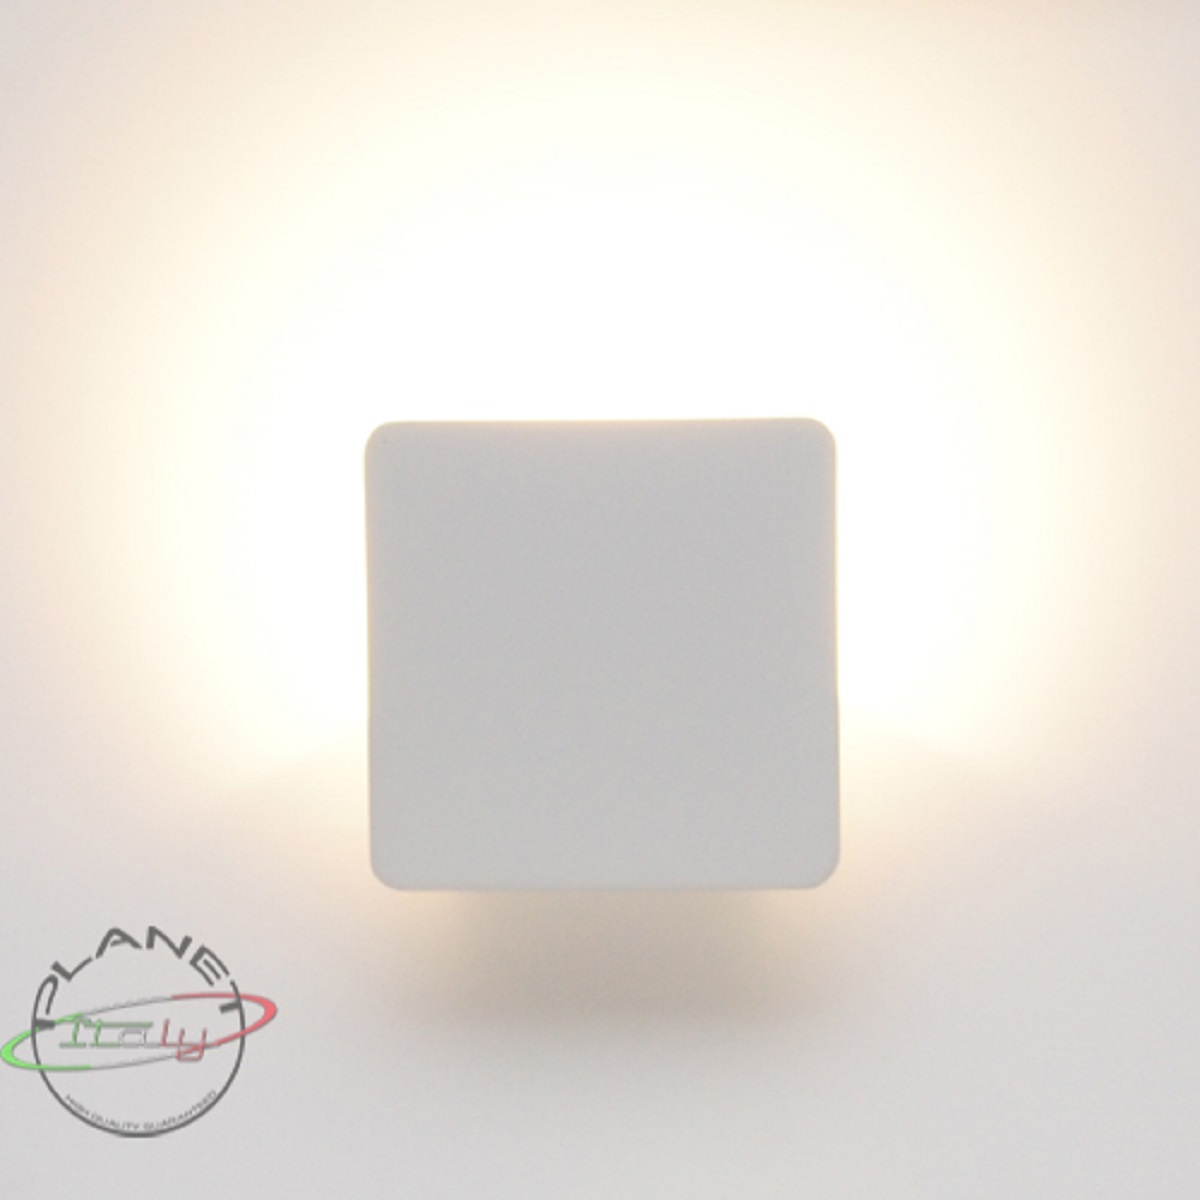 Applique lampada da parete led luce calda 10w per interni 220v salone camera